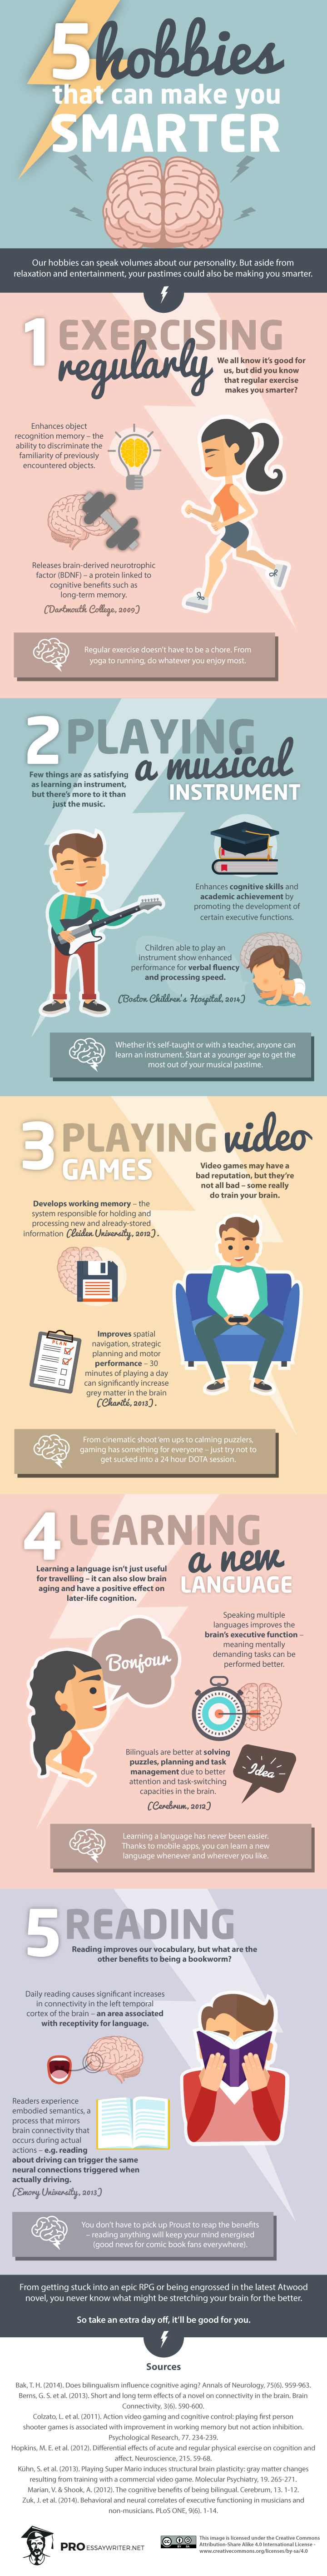 5-Hobbies-That-Can-Make-You-Smarter-Infographic